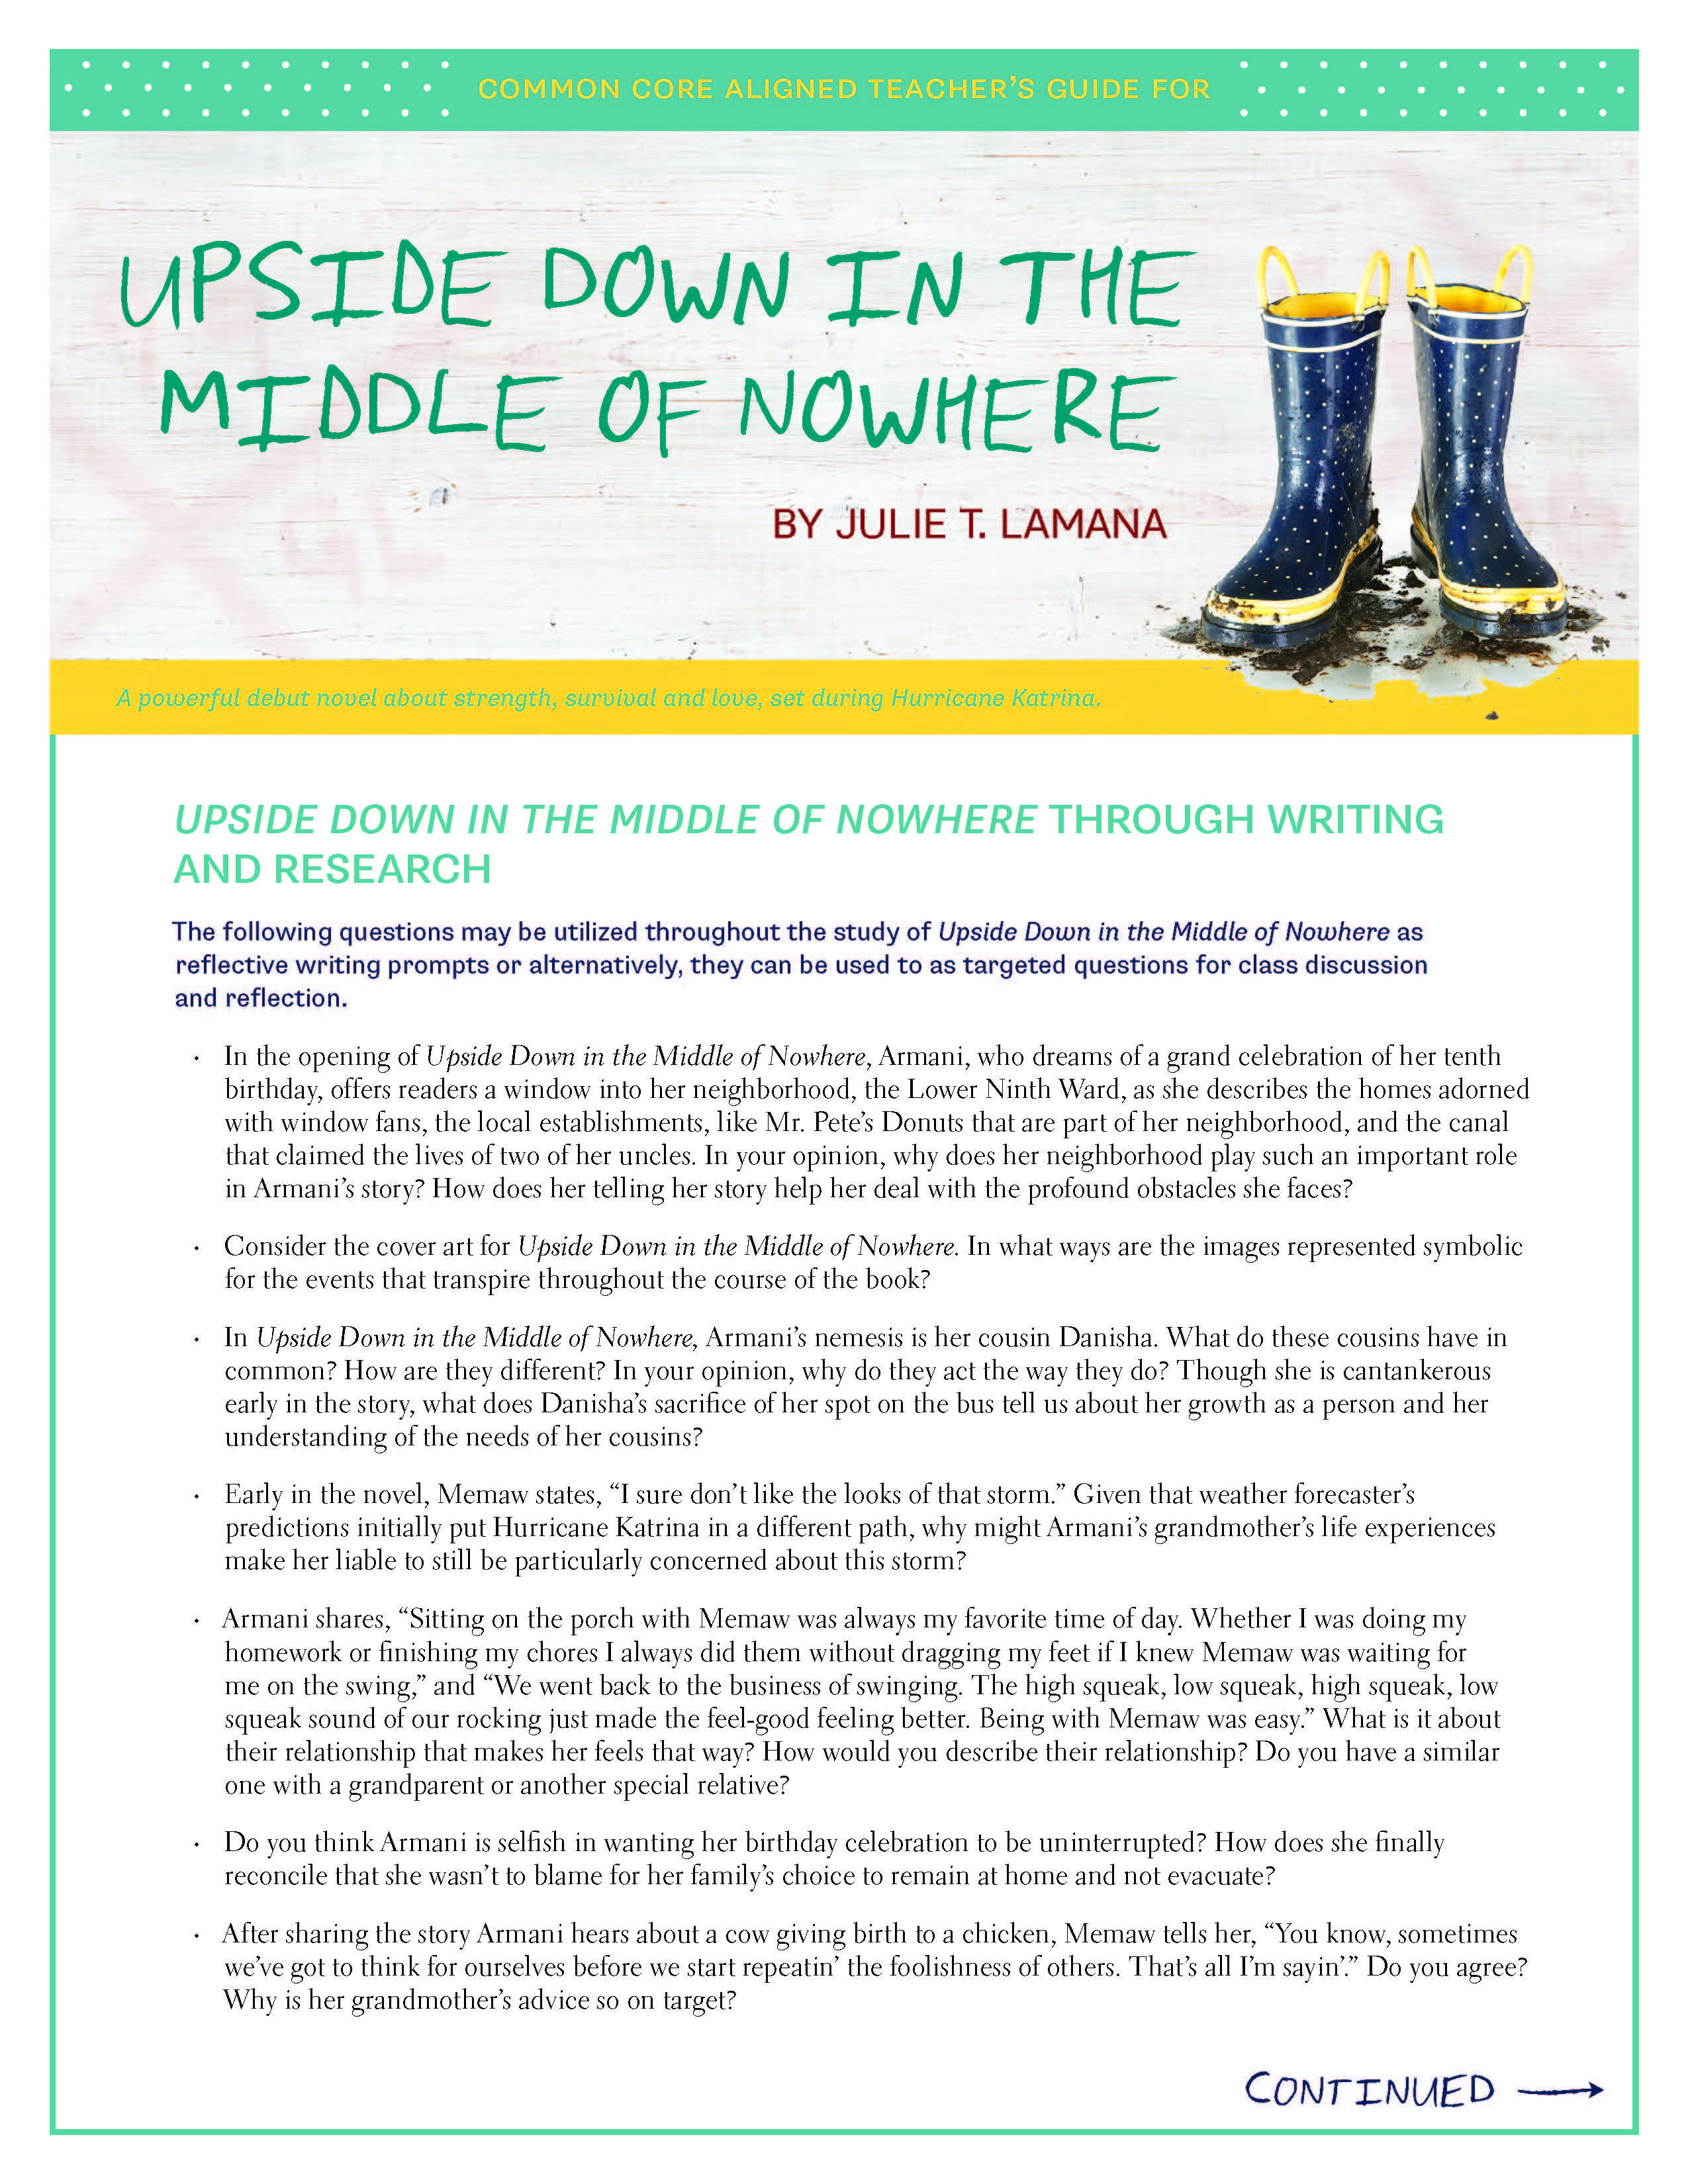 Common Core aligned teacher's guide for UPSIDE DOWN IN THE MIDDLE OF  NOWHERE by Julie T. Lamana